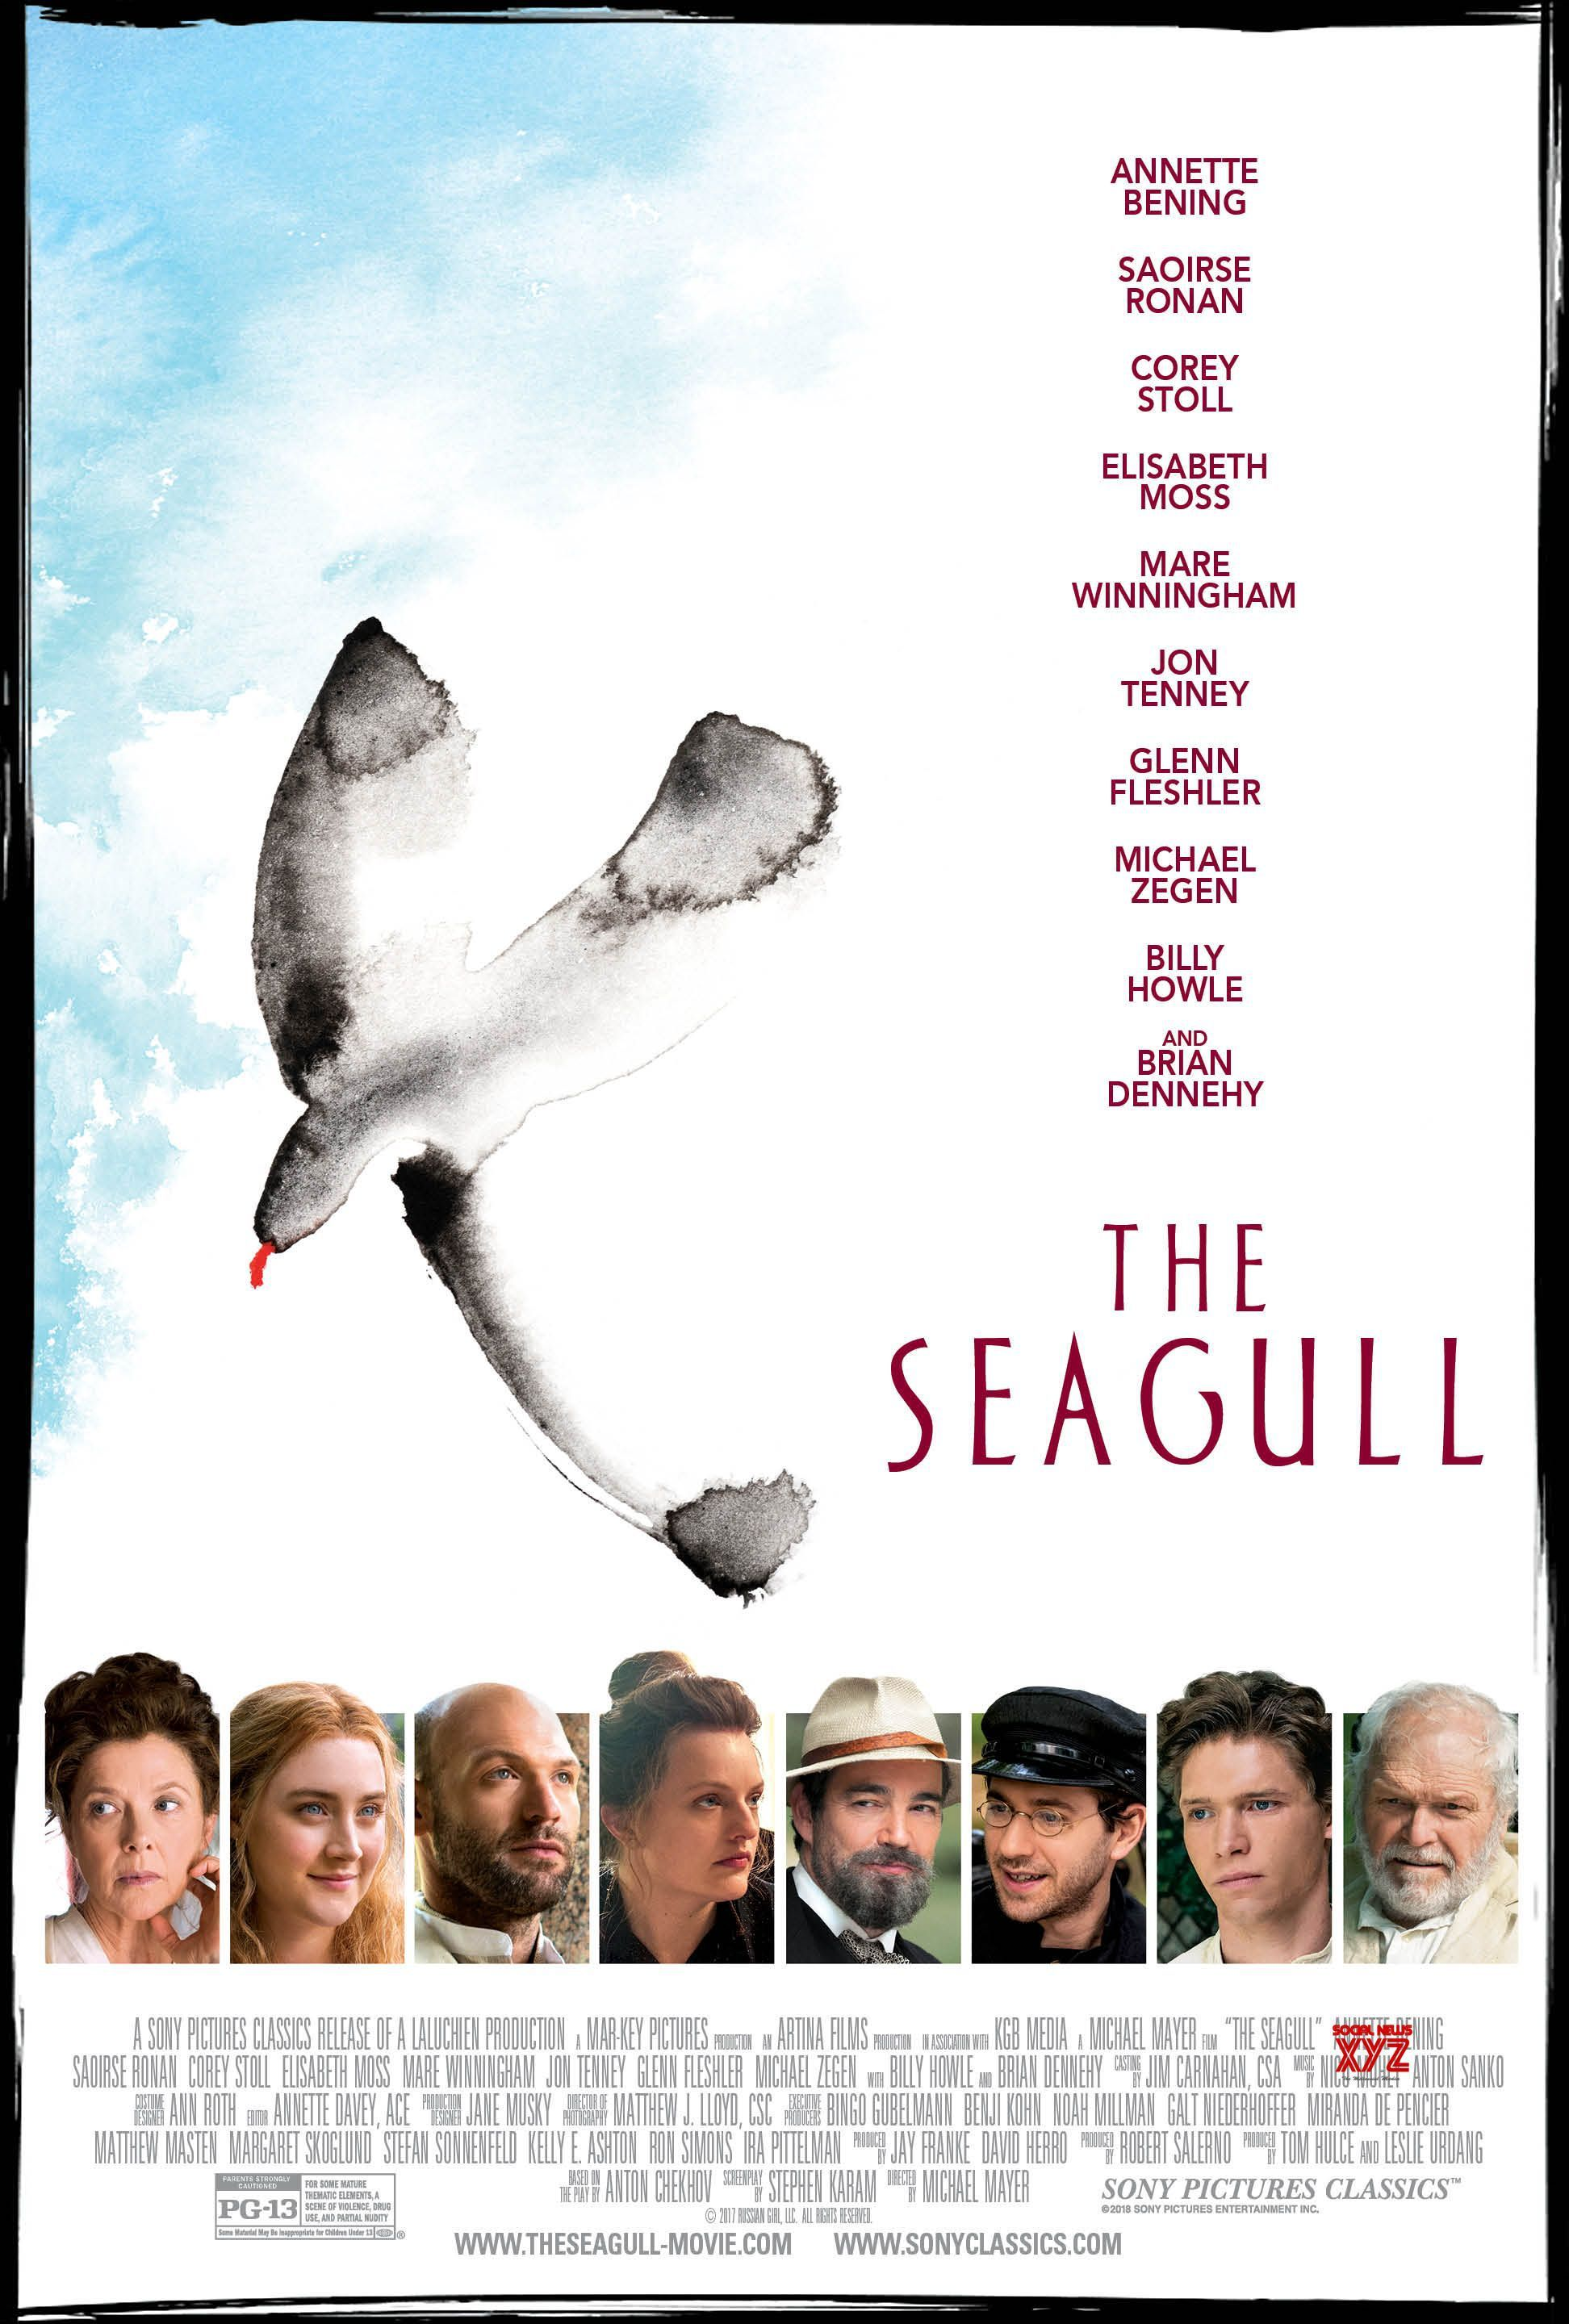 The Seagull (2018) - Directed by: Michael MayerStarring: Annette Bening, Saoirse Ronan, Corey Stoll, Elisabeth MossRated: PG13Running Time: 1h 38mTMM Score: 3 stars out of 5STRENGTHS: Acting, WritingWEAKNESSES: Pacing, It's a Play